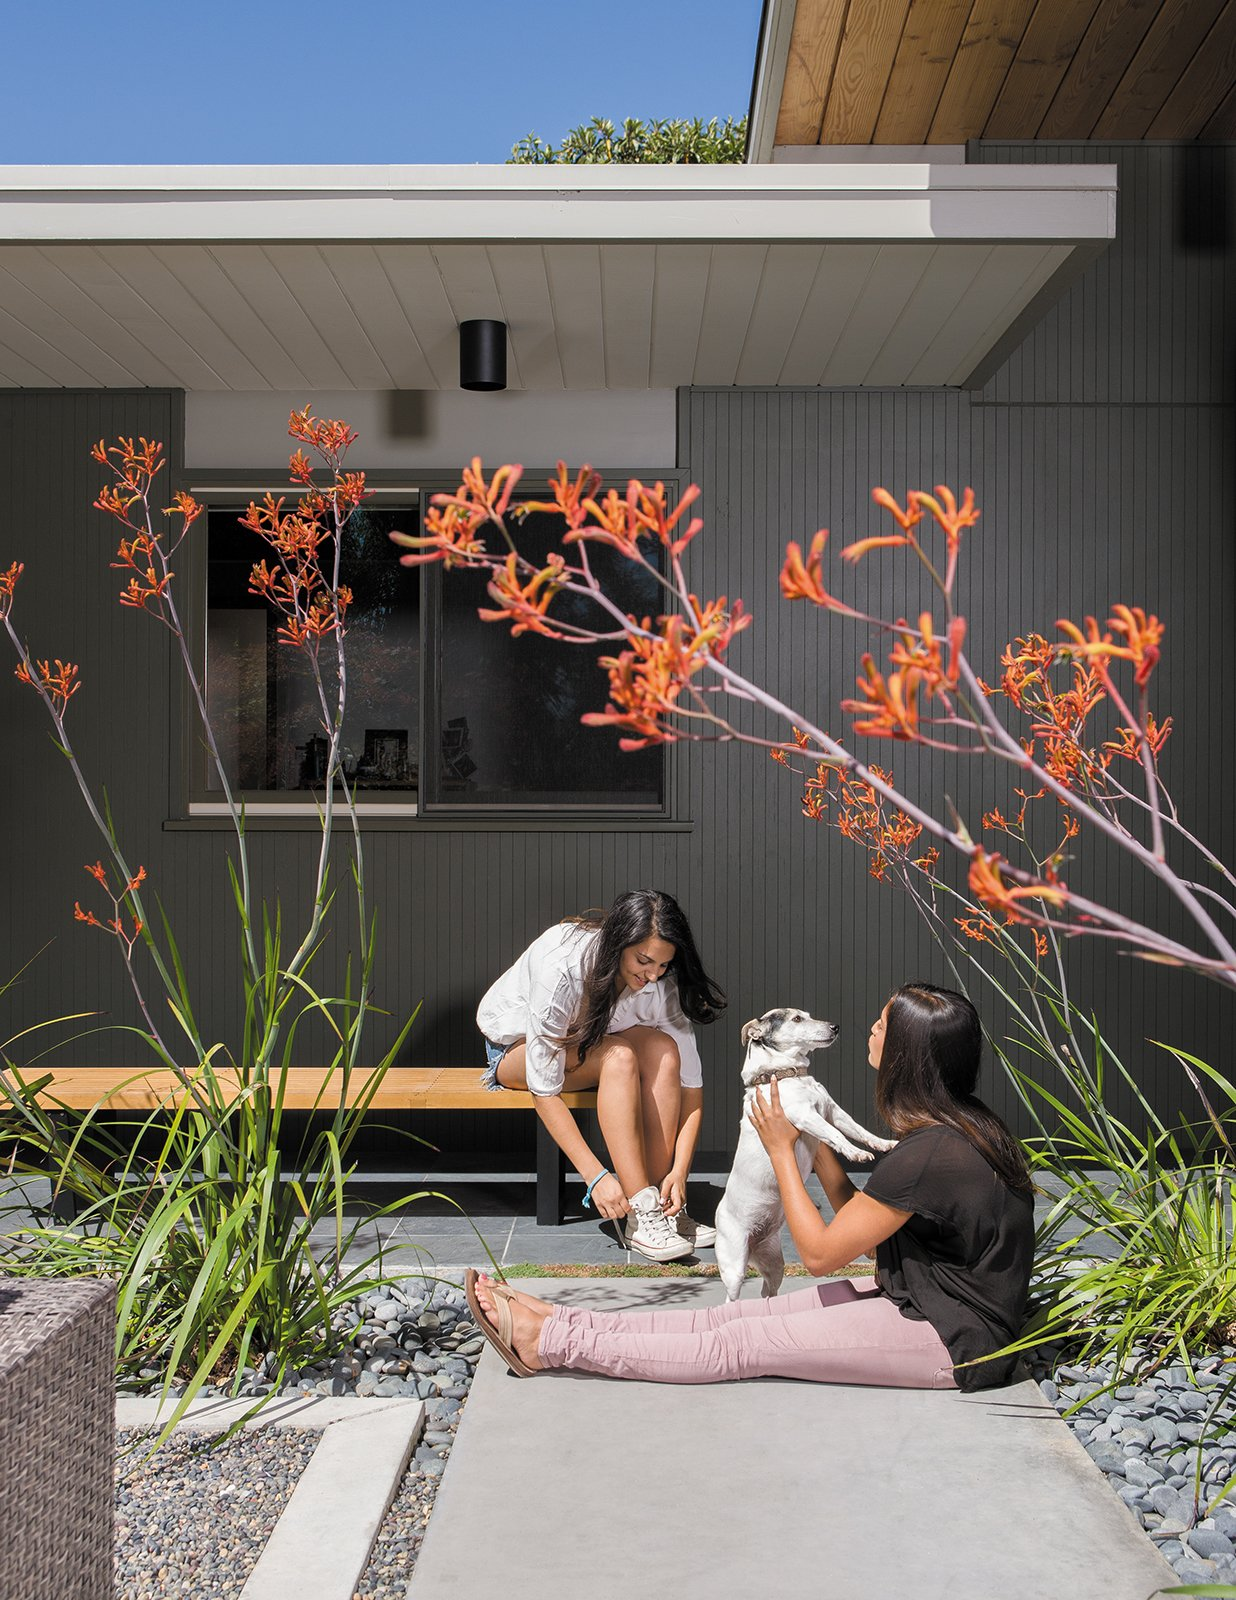 Their daughters, Annapurna, left, and Siddartha, play with their dog, Anouck, beneath the kangaroo paws in the entry garden courtyard. Tagged: Outdoor, Hardscapes, Walkways, Concrete Patio, Porch, Deck, and Front Yard.  Outdoor by Isabel Solorzano from Creative Landscape Design for a Renovated Eichler in California